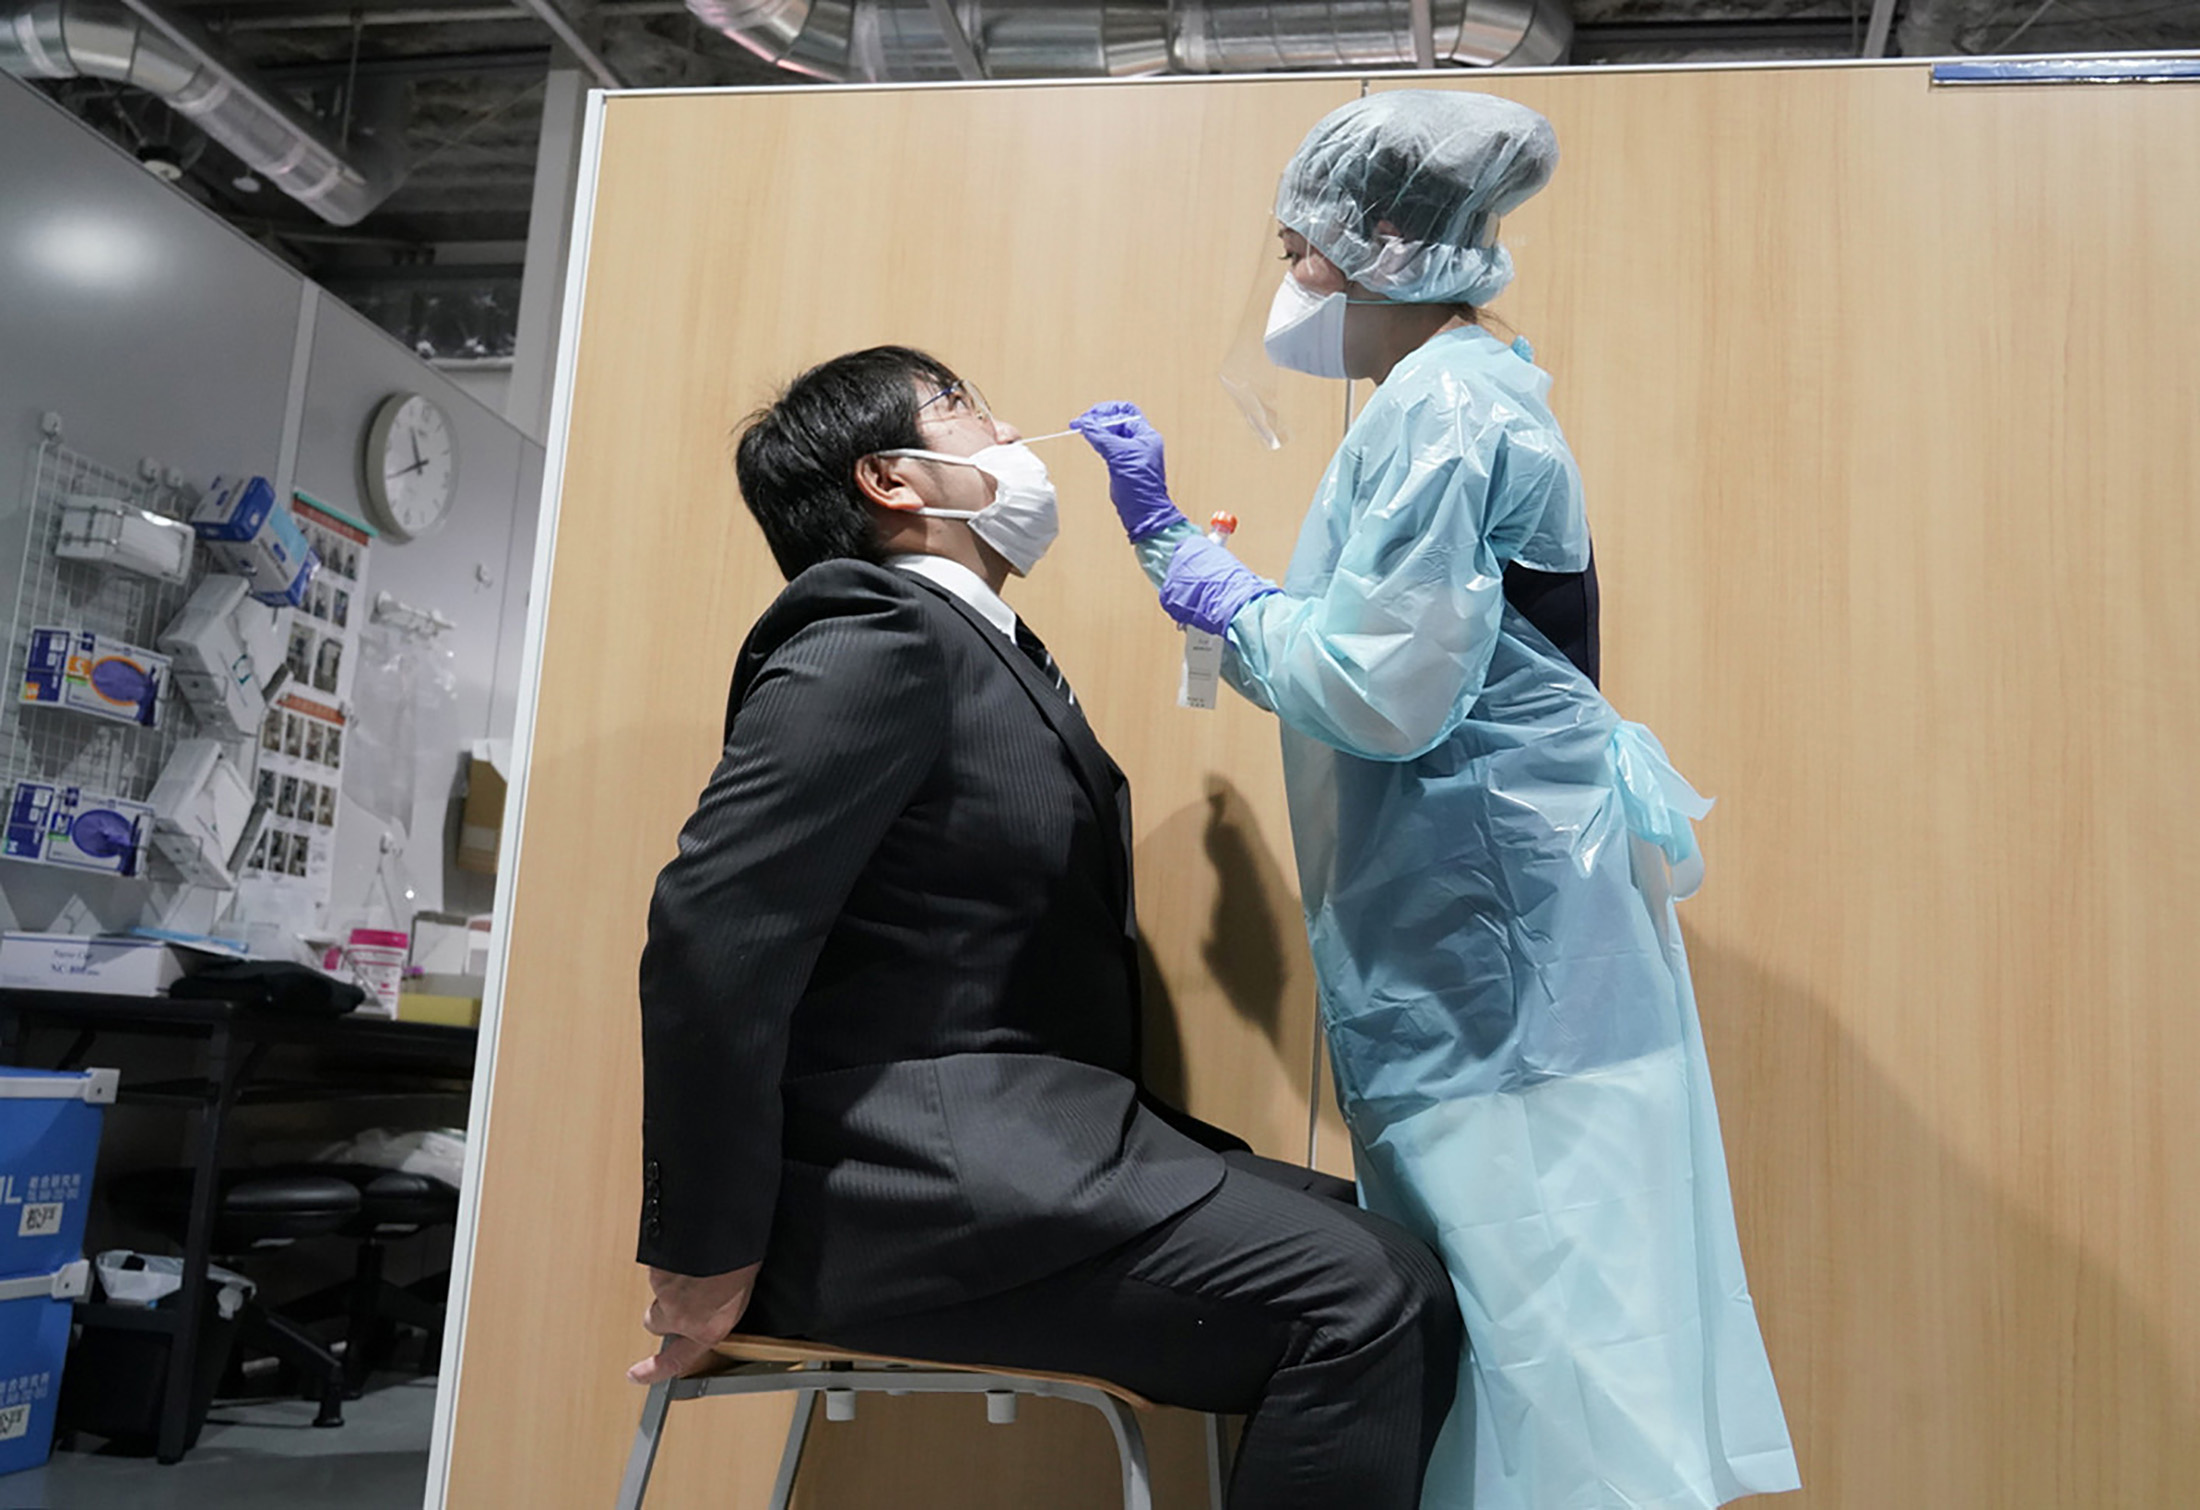 A medical staff member conducts a test for the coronavirus at the testing center at the Narita Airport in Narita, Japan, on November 2.